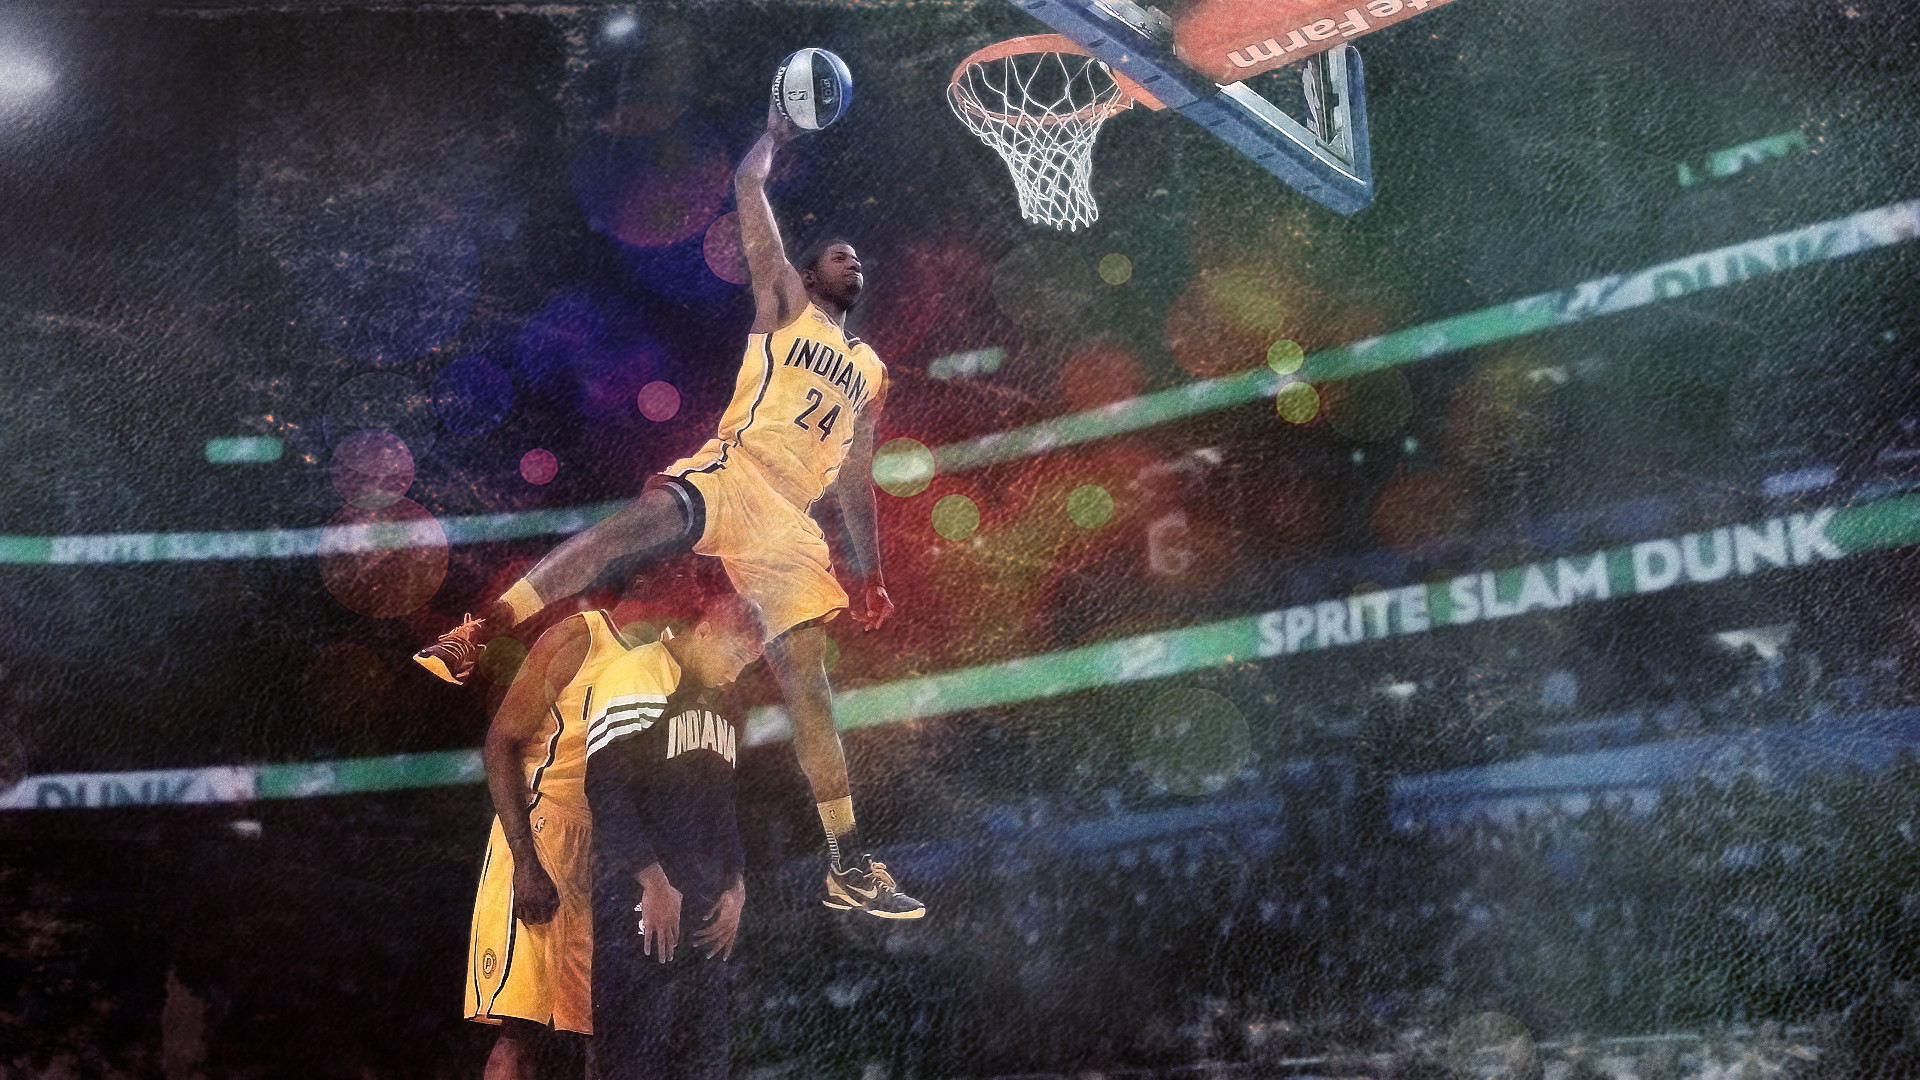 2560x1600 Paul George 2014 Slam Dunk 2560×1600 Wallpaper